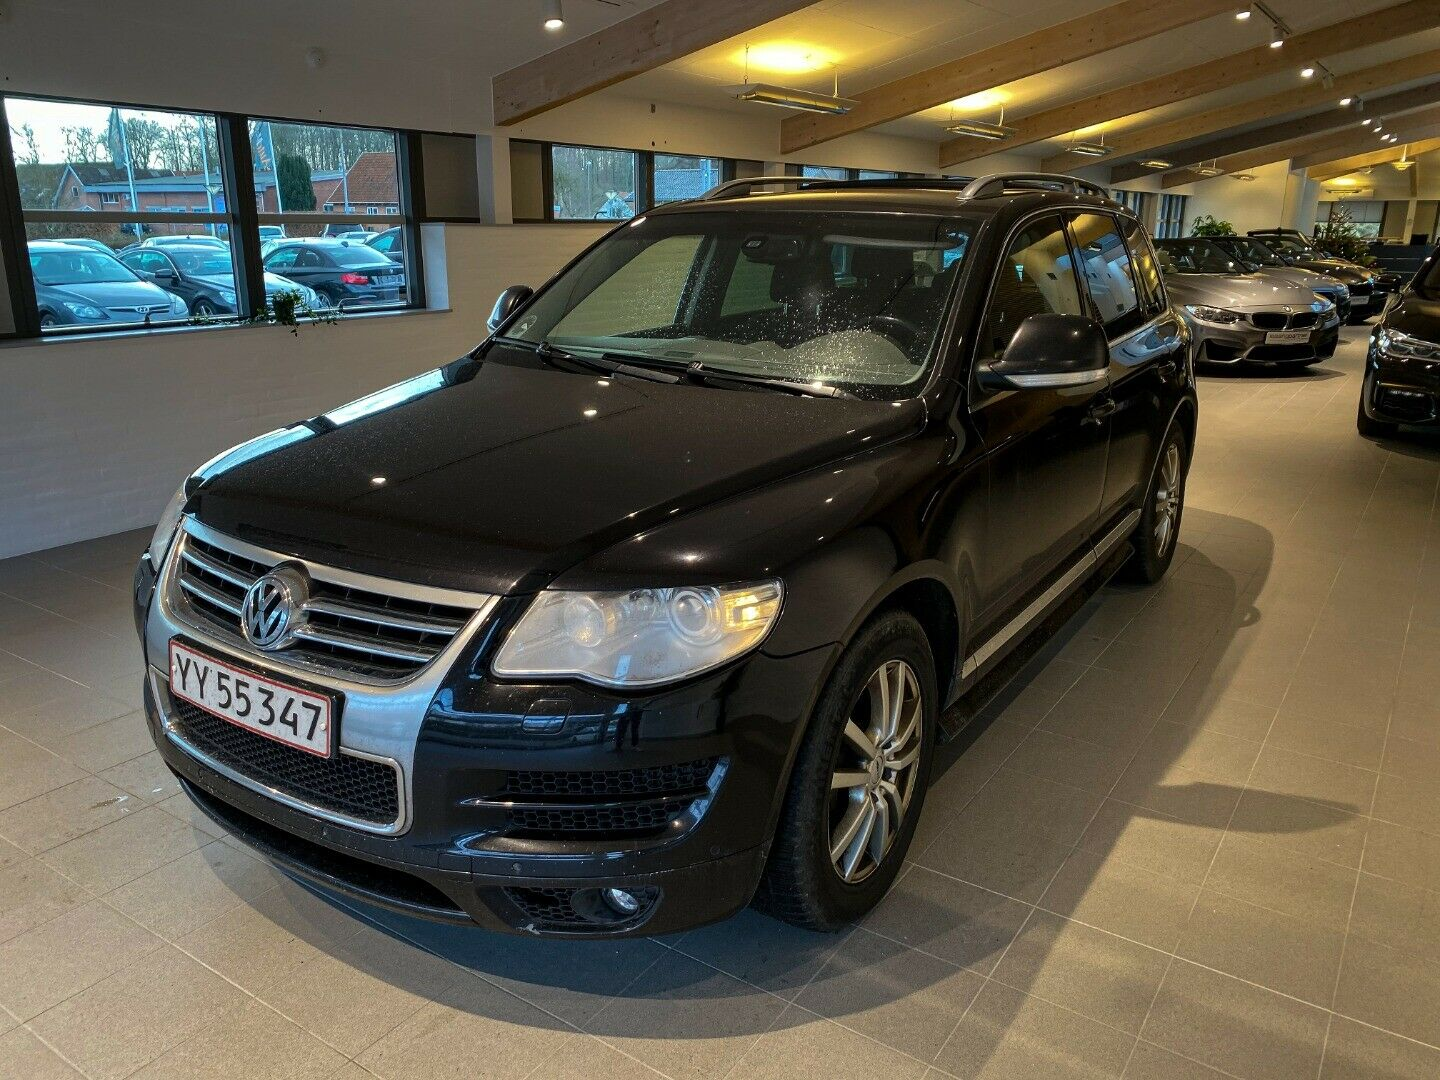 VW Touareg 3,0 TDi Tiptr. 5d, Sort